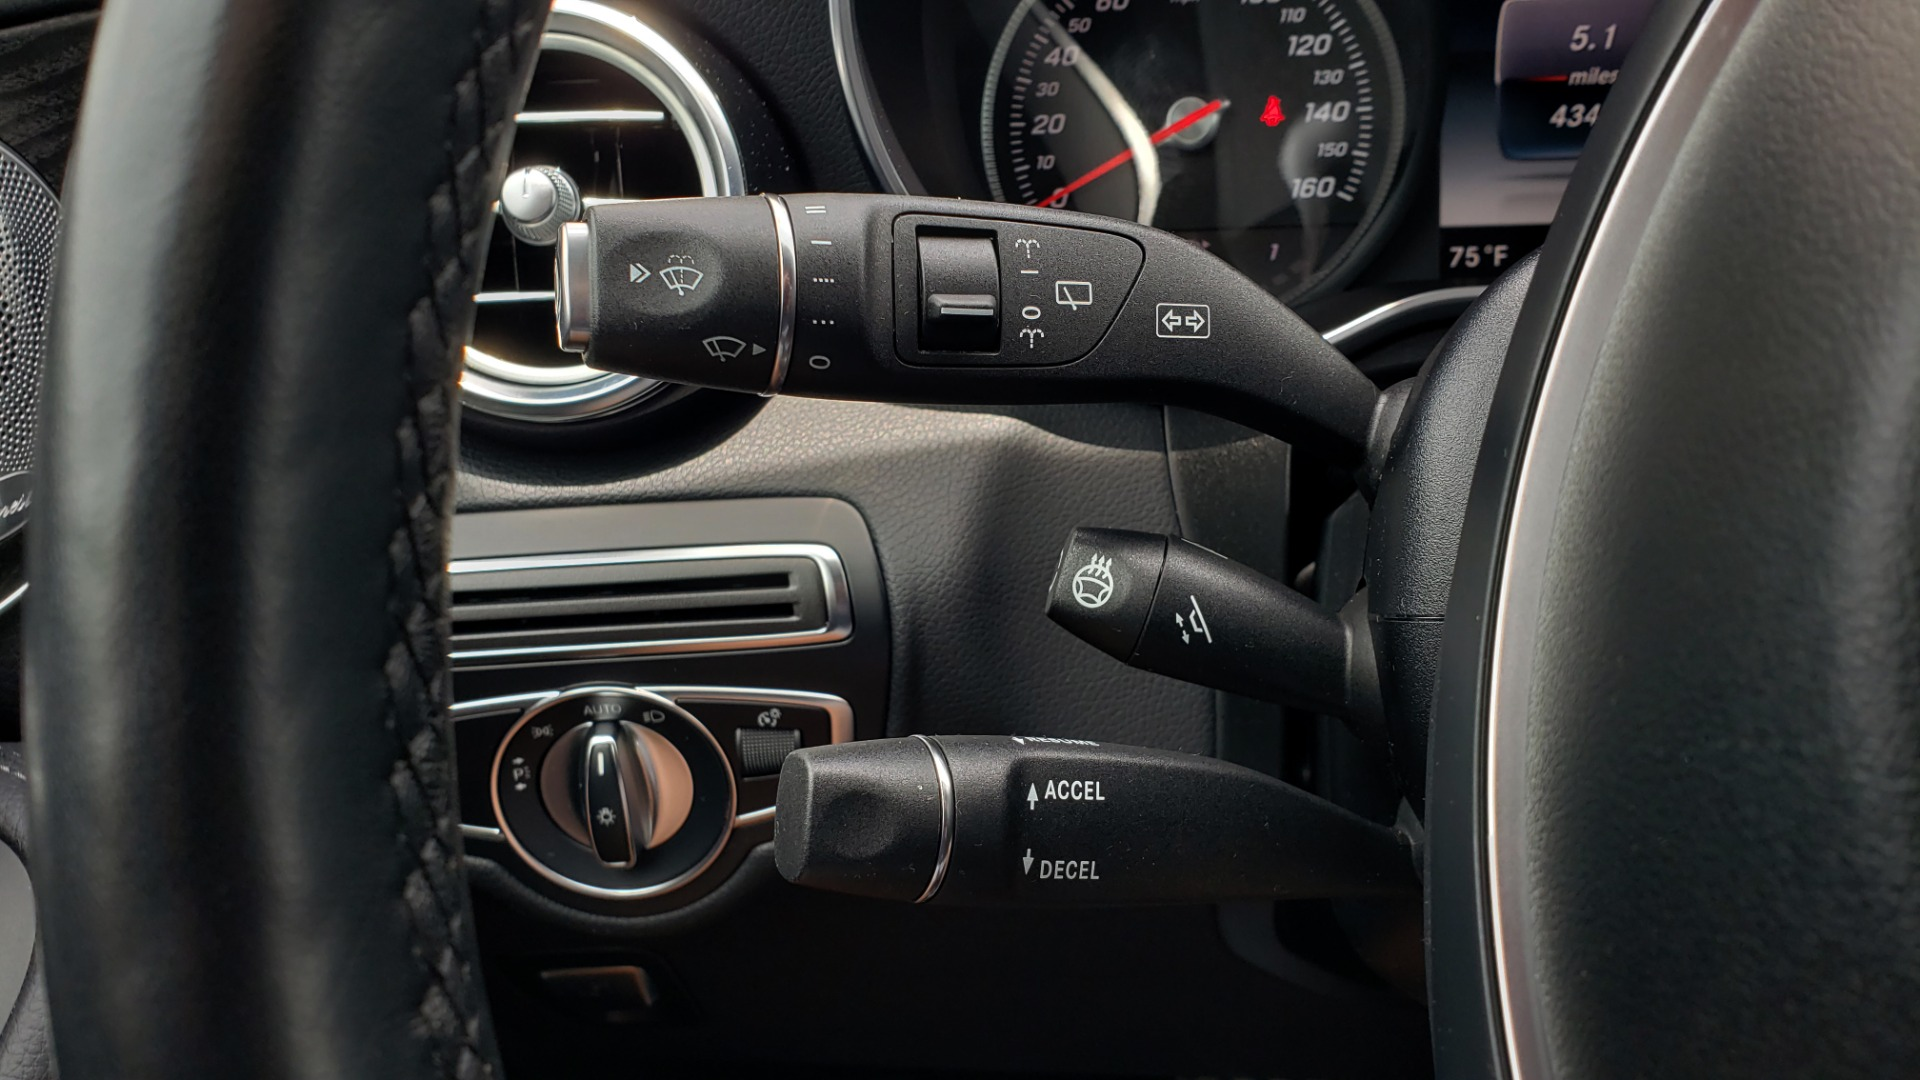 Used 2018 Mercedes-Benz GLC 300 4MATIC PREMIUM / NAV / BURMESTER SND / PANO-ROOF / REARVIEW for sale $35,495 at Formula Imports in Charlotte NC 28227 40